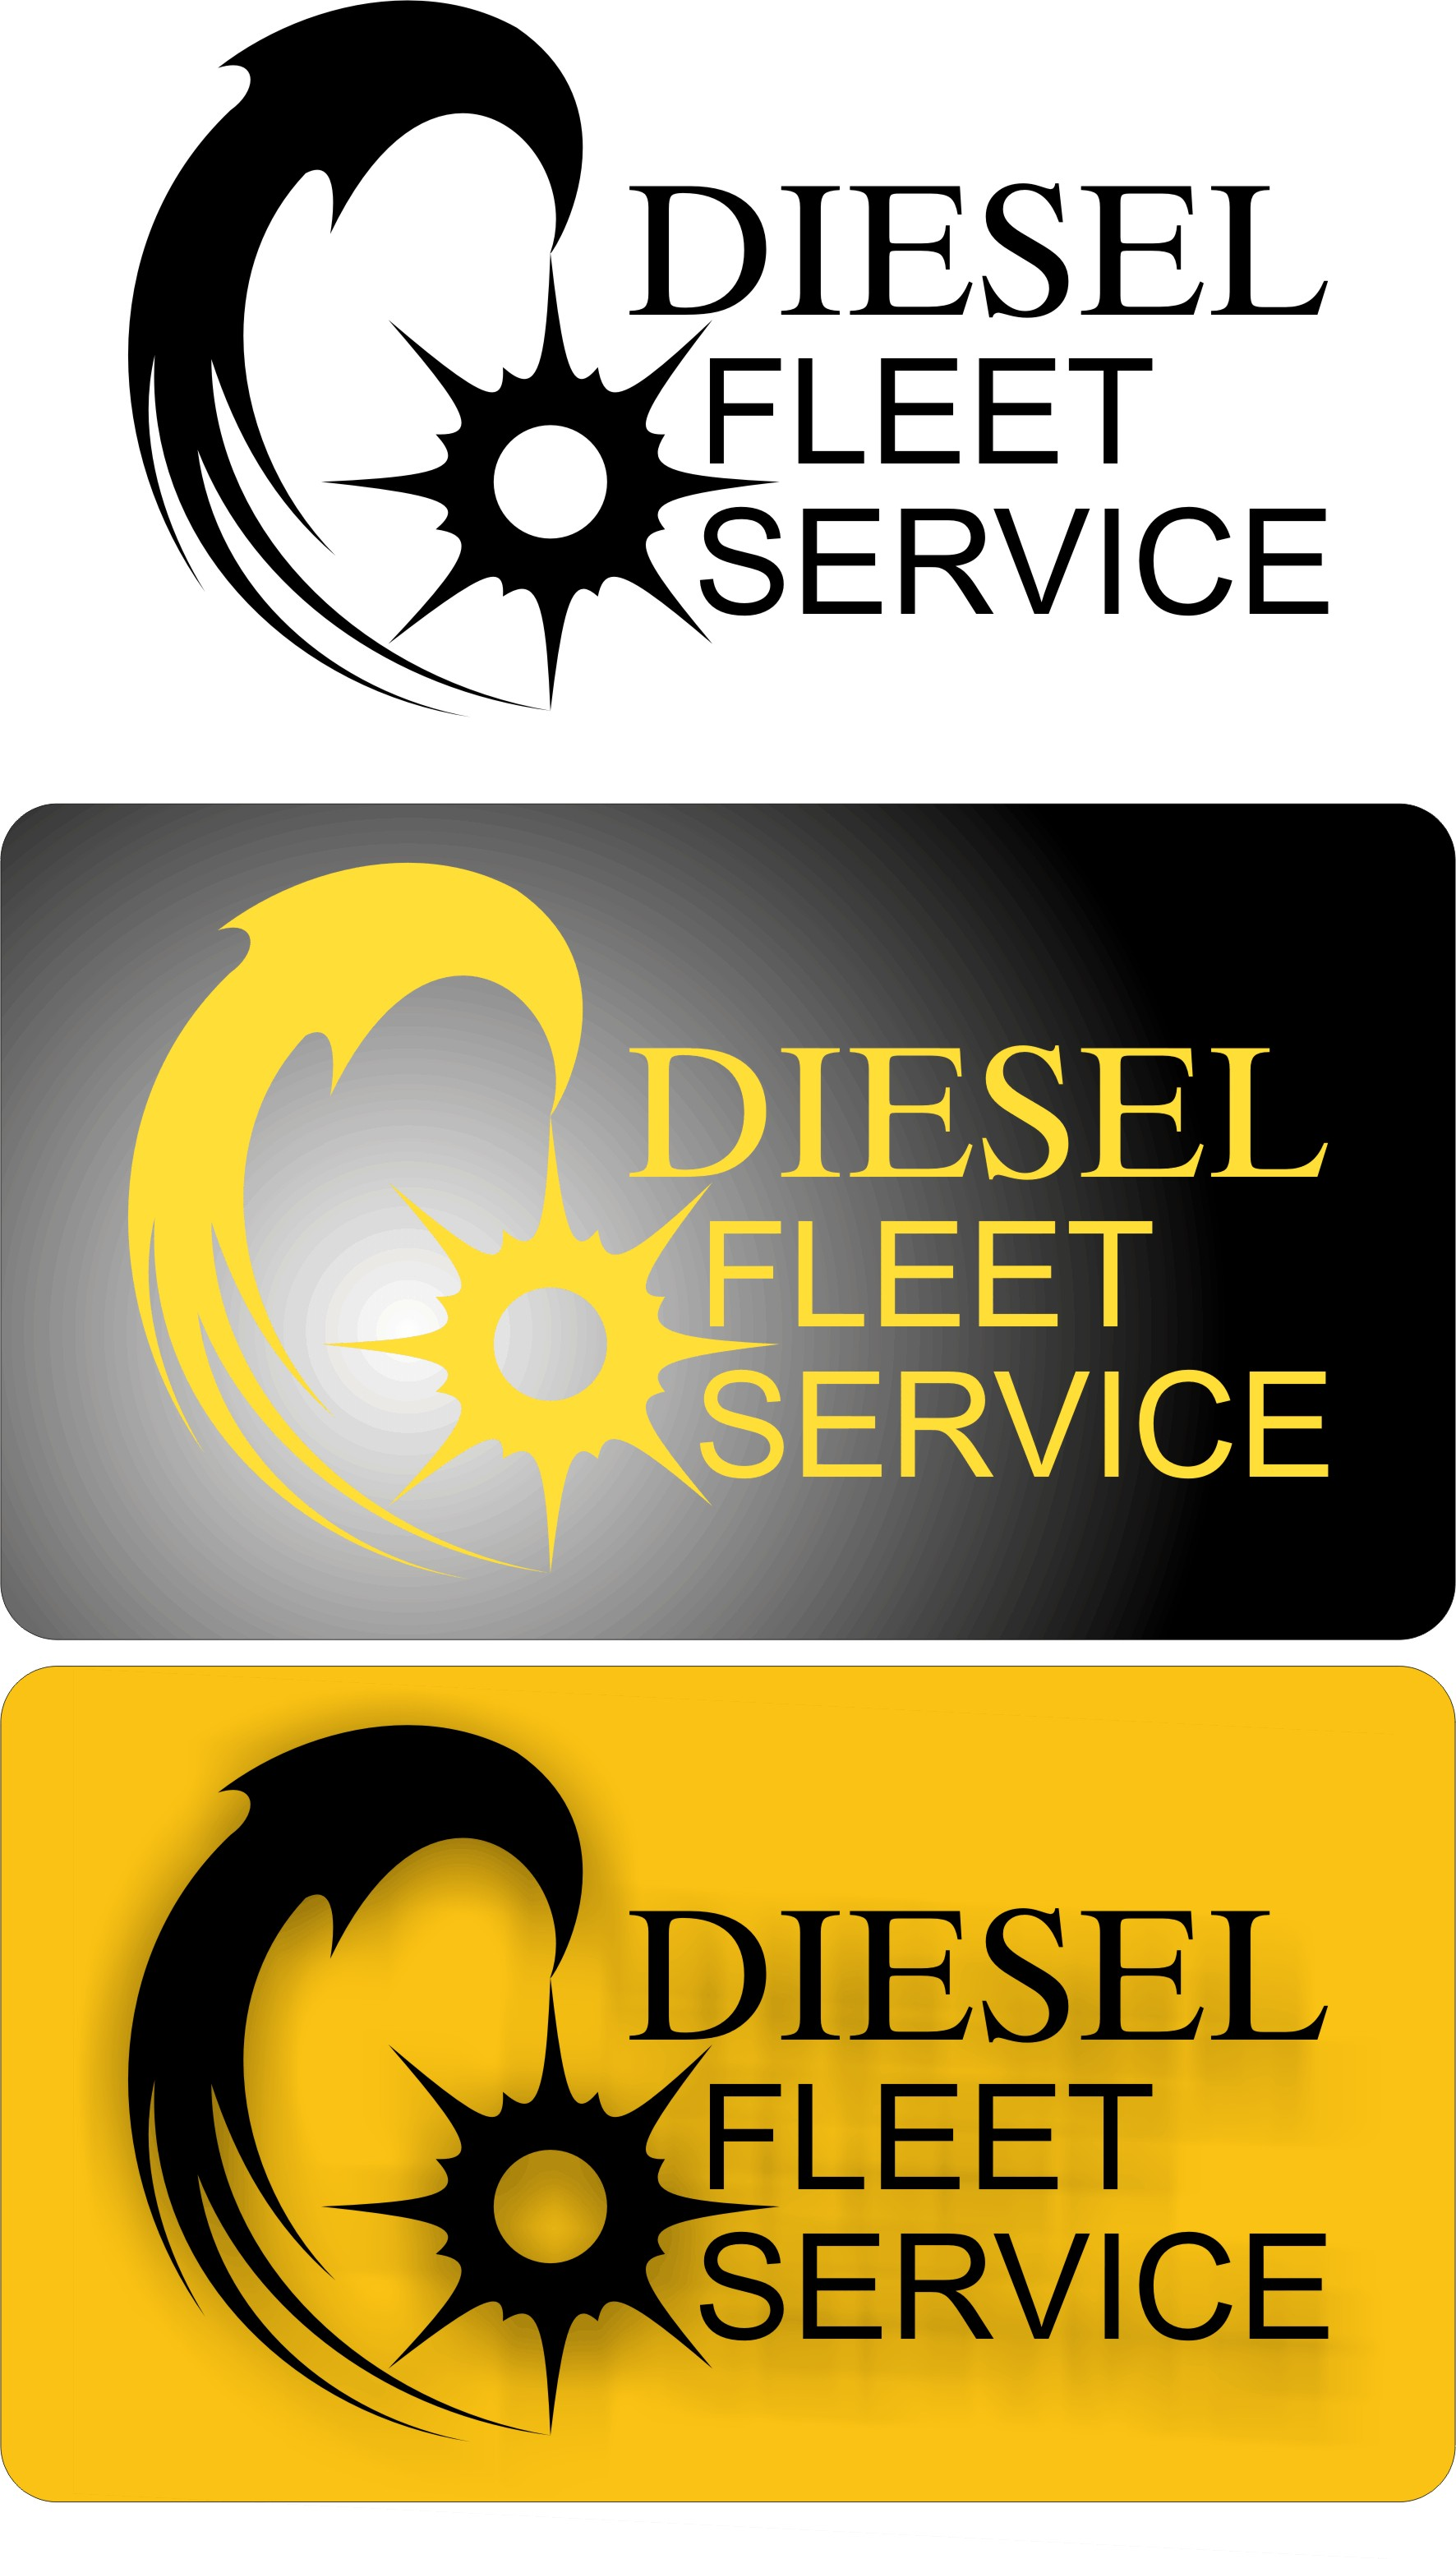 Logo Design by Korsunov Oleg - Entry No. 7 in the Logo Design Contest Artistic Logo Design for Diesel Fleet Service, LLC.